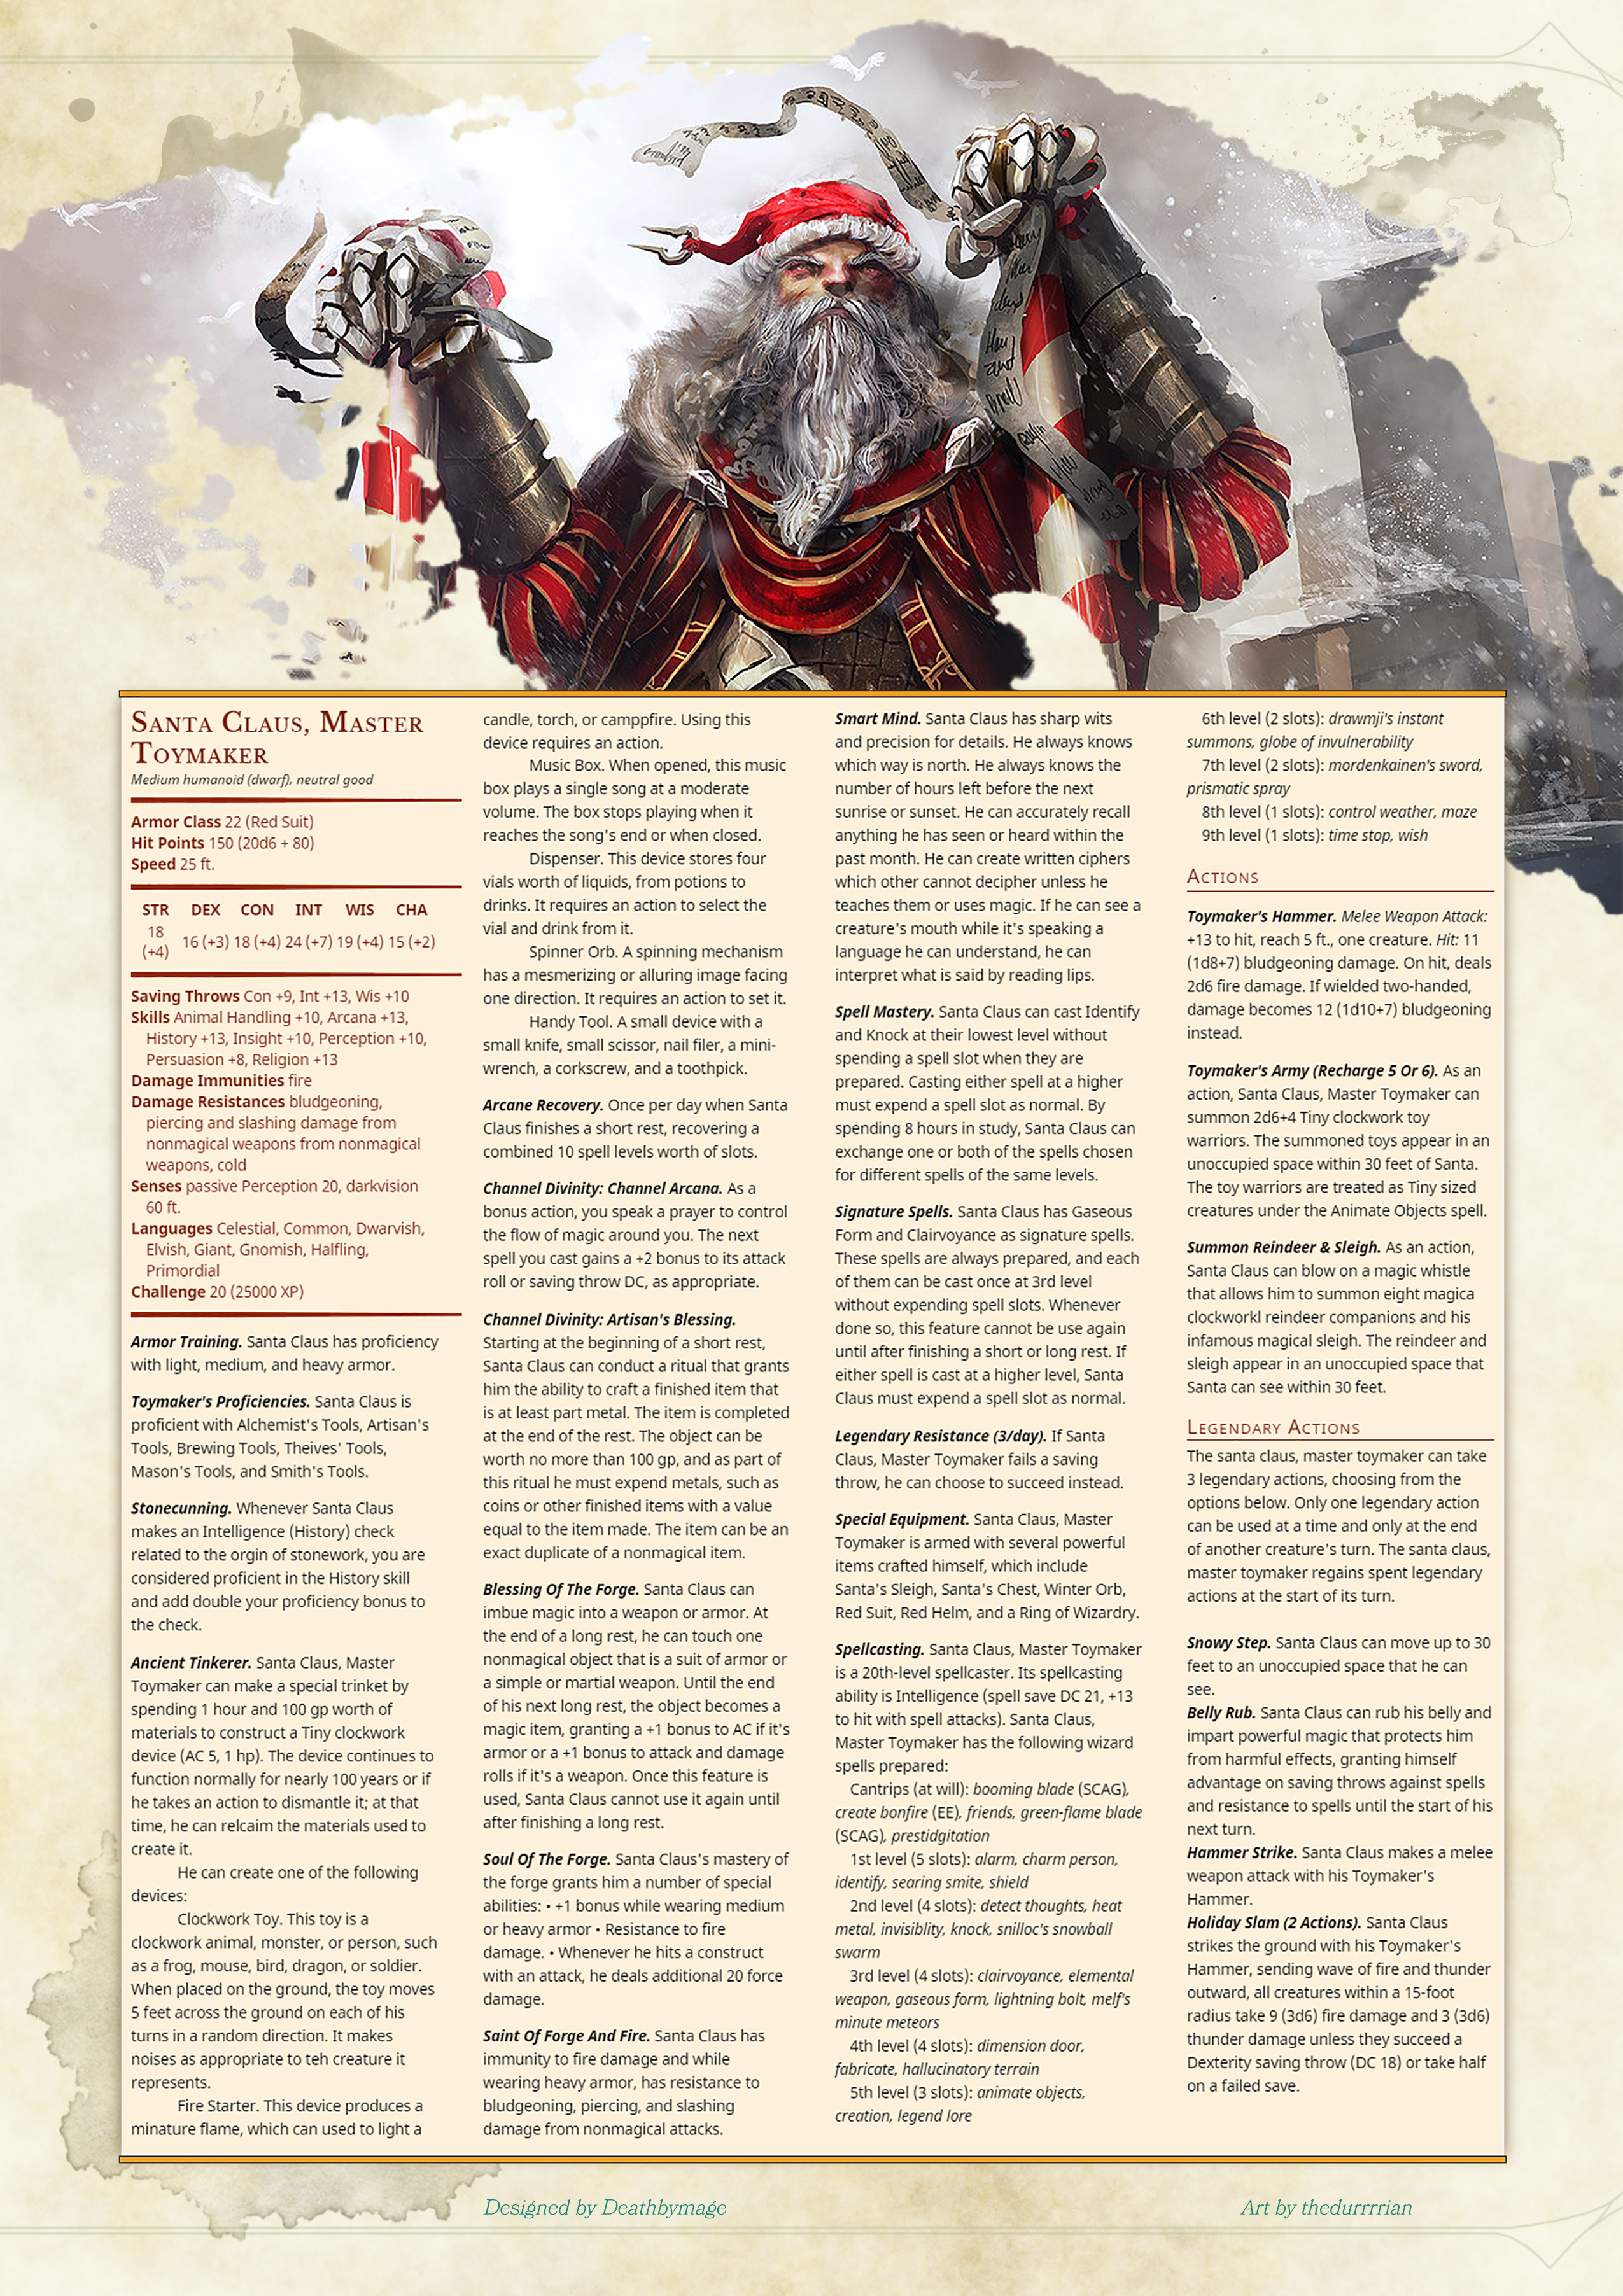 Return of Santa Claus in D&D 5e stats – Master Toymaker edition